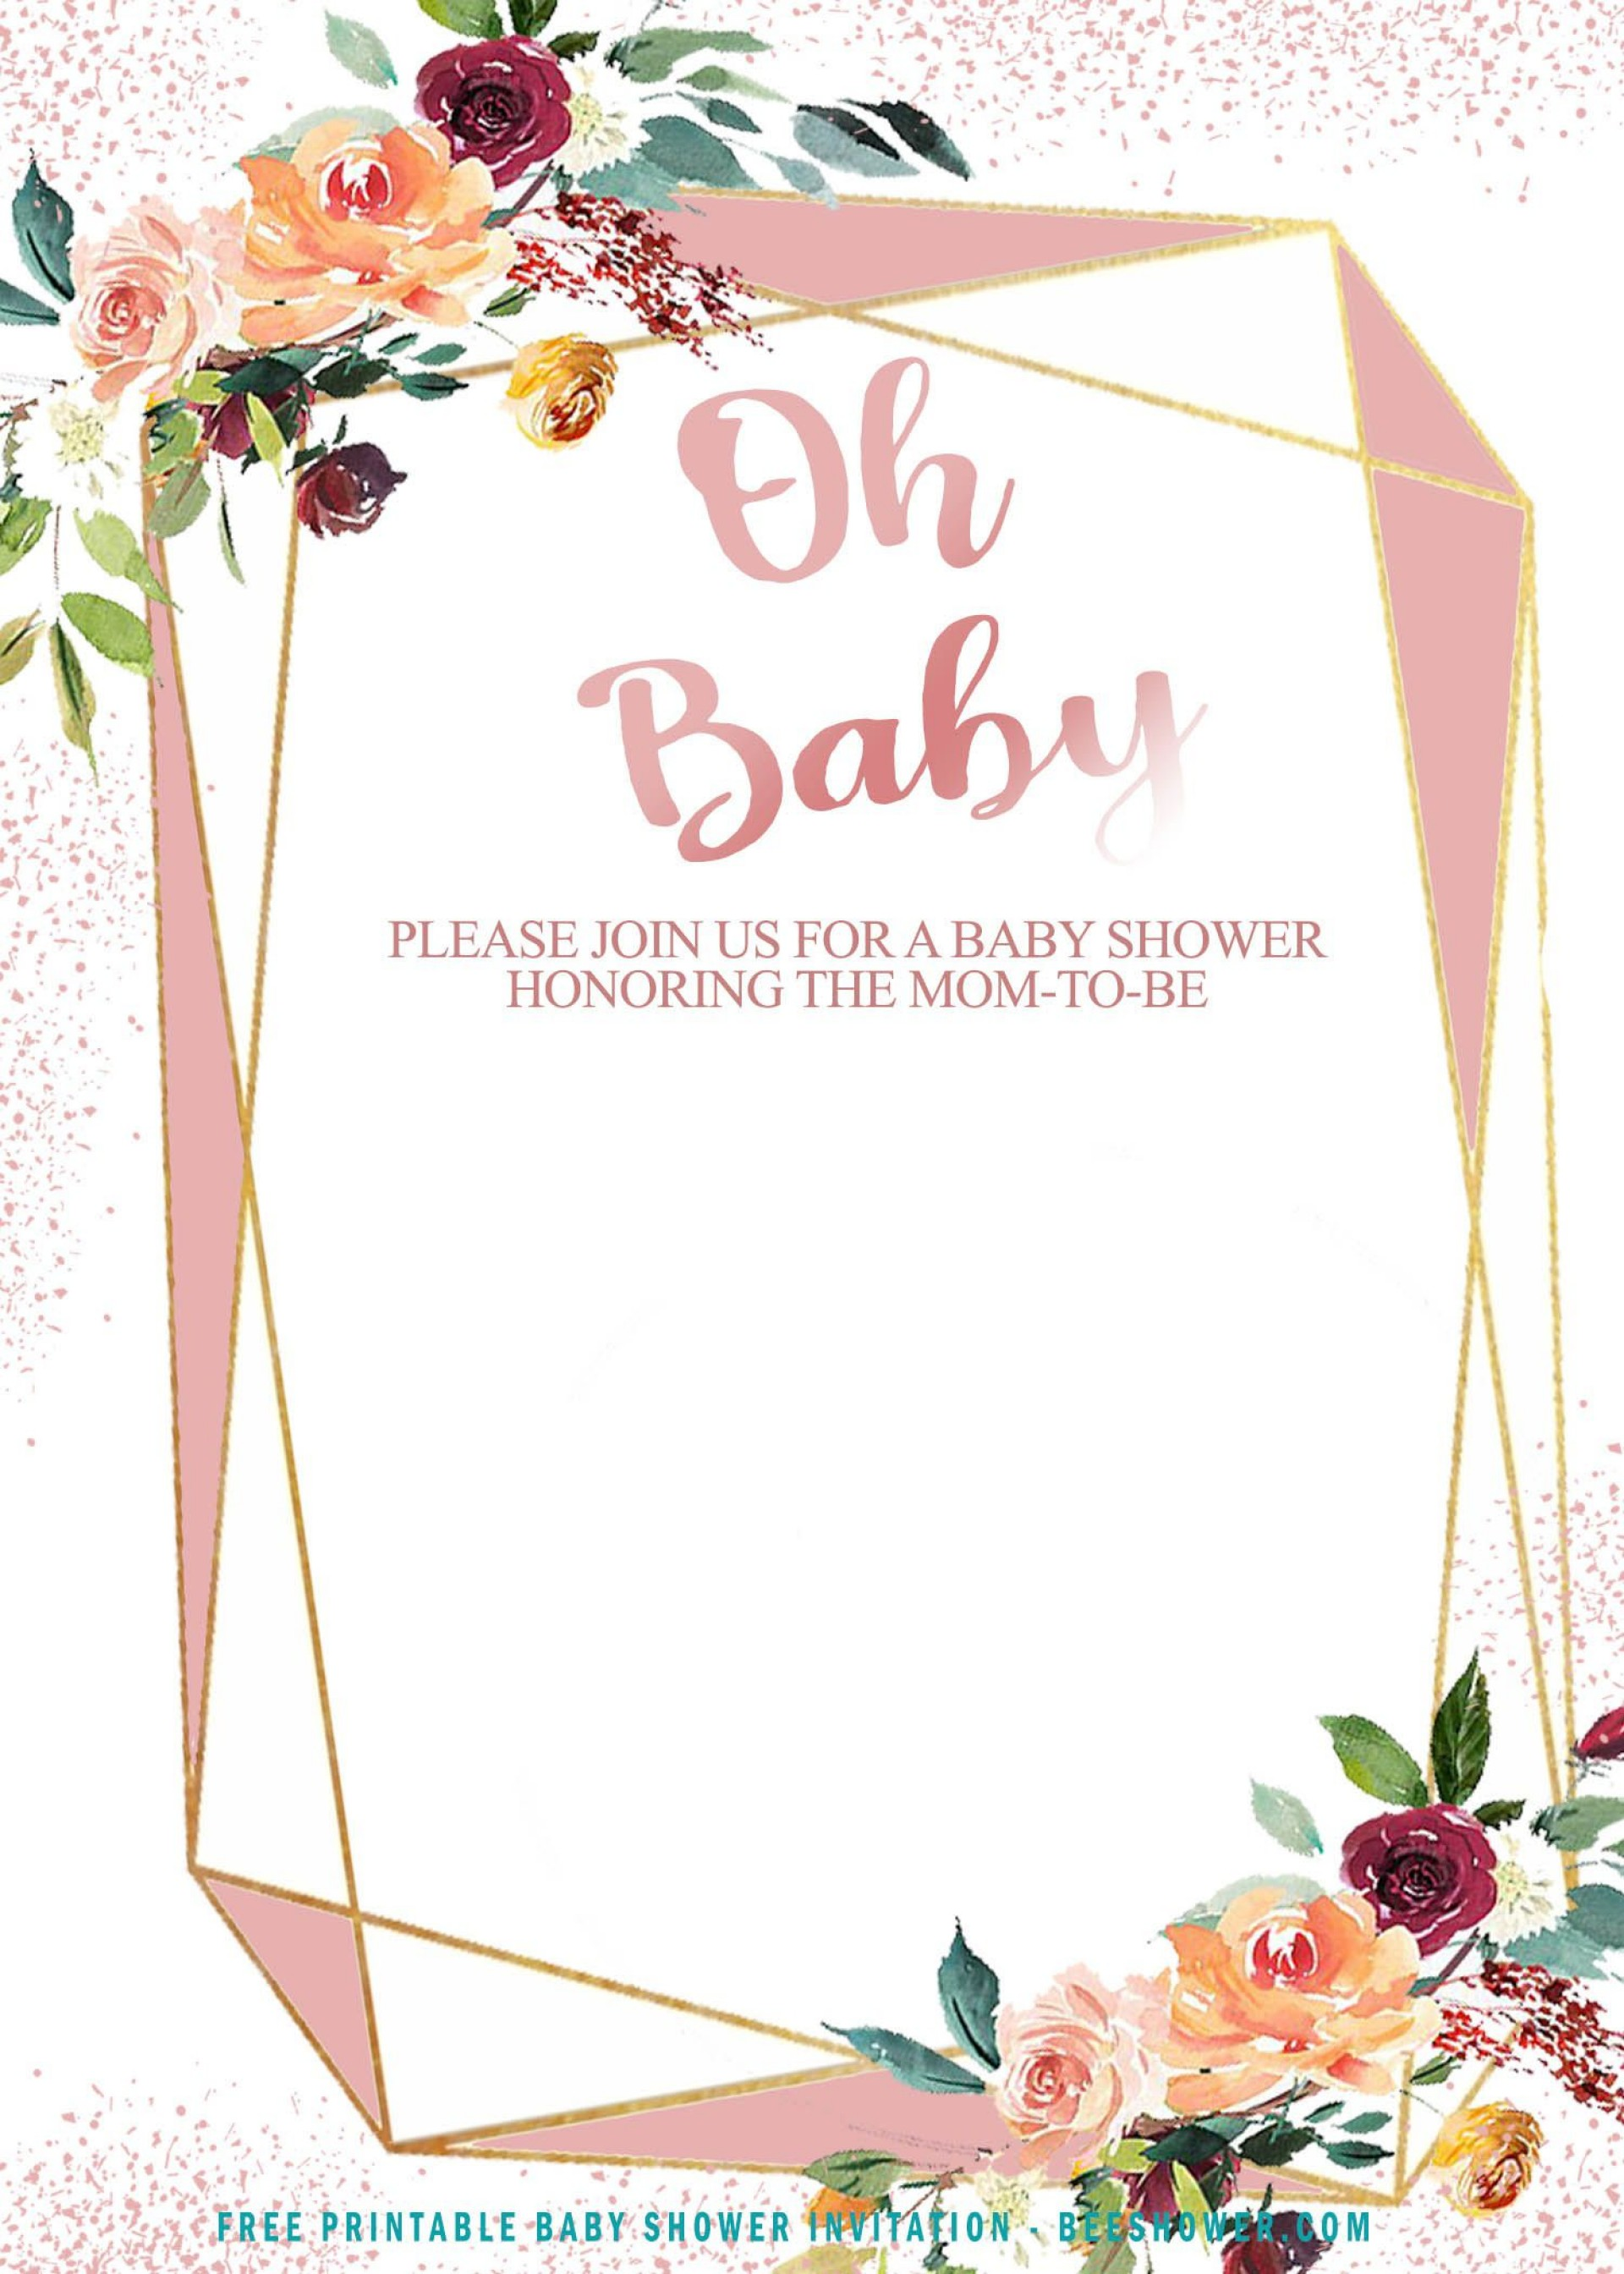 008 Beautiful Baby Shower Invite Template Word Highest Clarity  Invitation Wording Sample Free Example1920